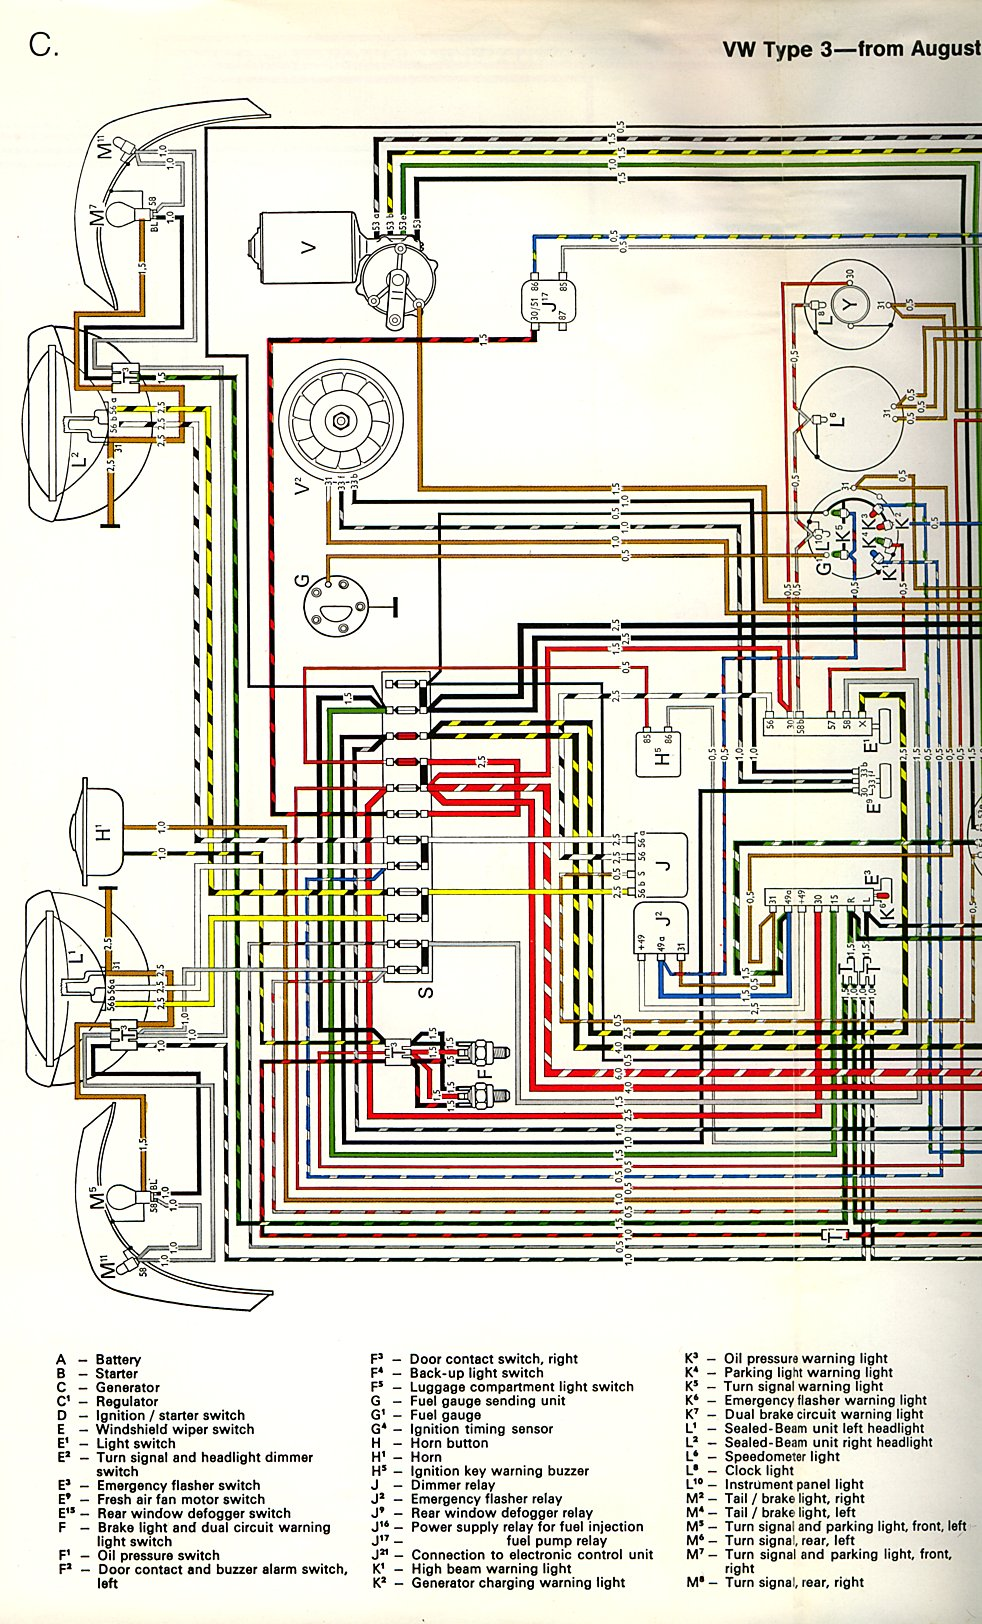 type3_72a thesamba com type 3 wiring diagrams 1973 vw wiring diagram at mifinder.co